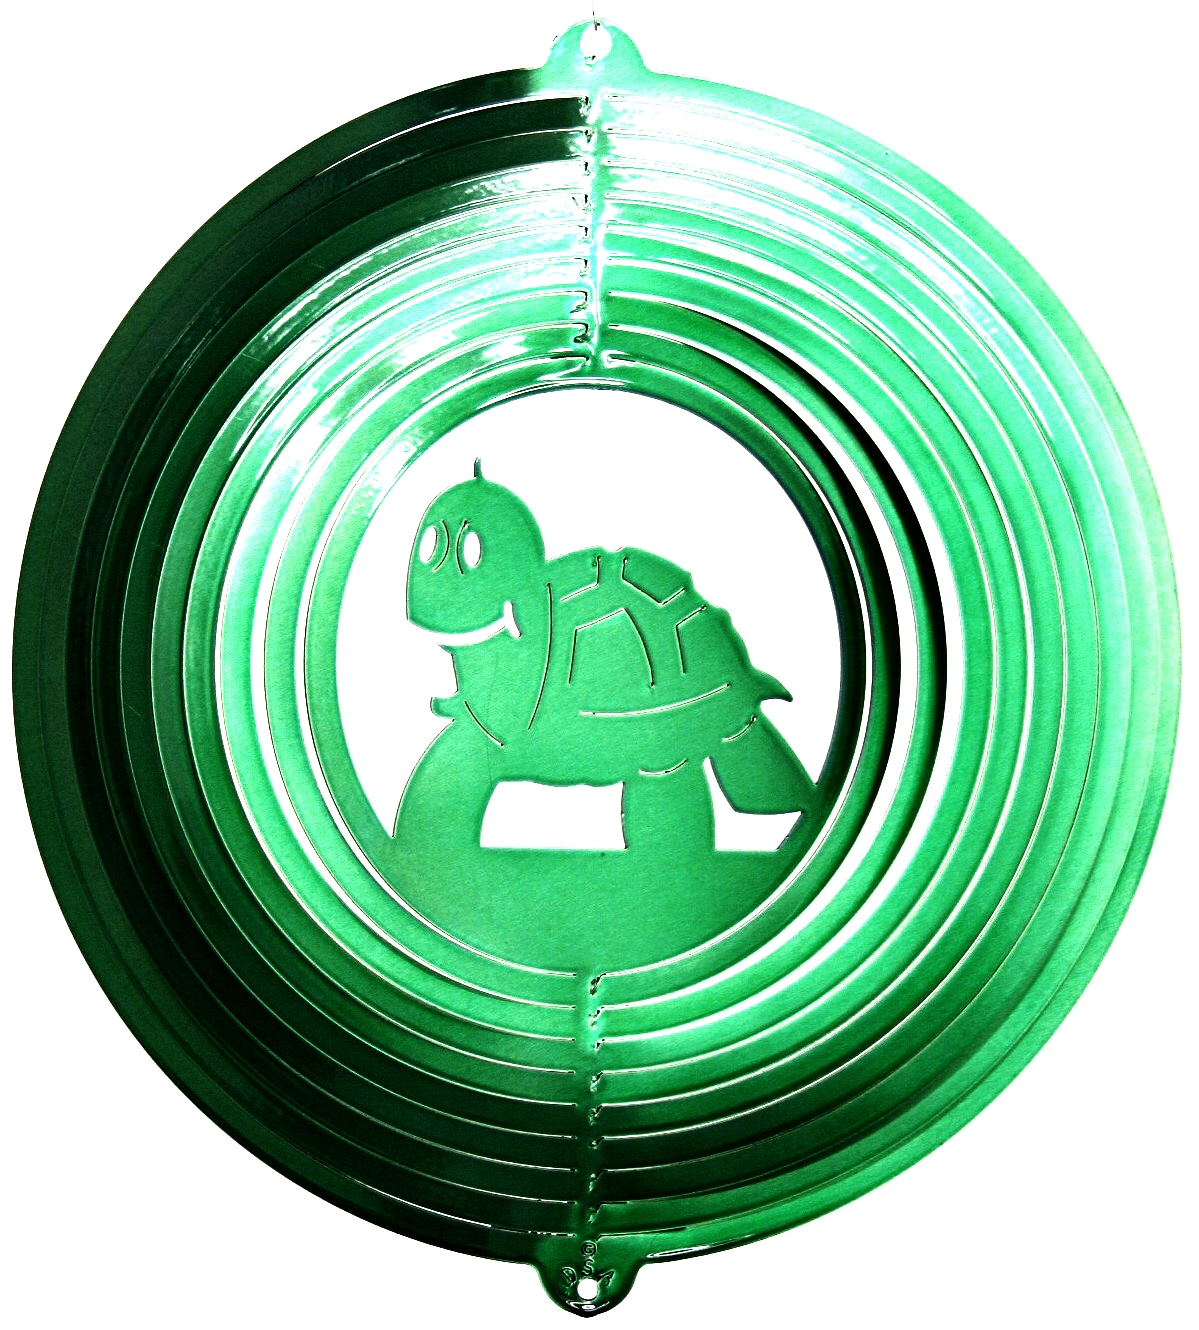 12 INCH TURTLE WIND SPINNER - Click Image to Close